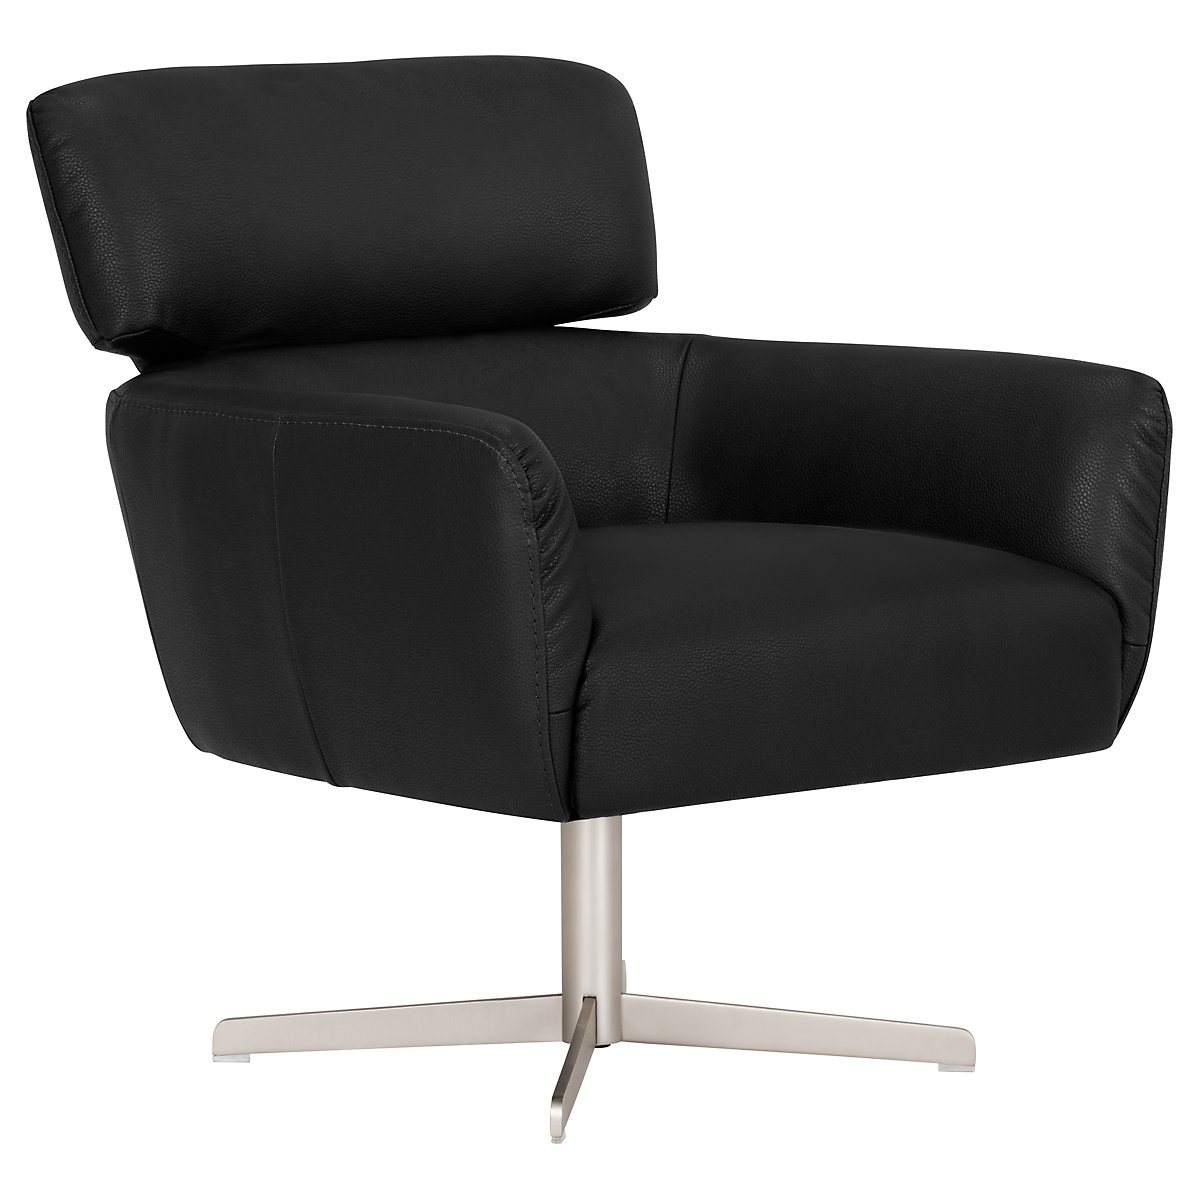 City Furniture Vanni Black Microfiber Swivel Accent Chair